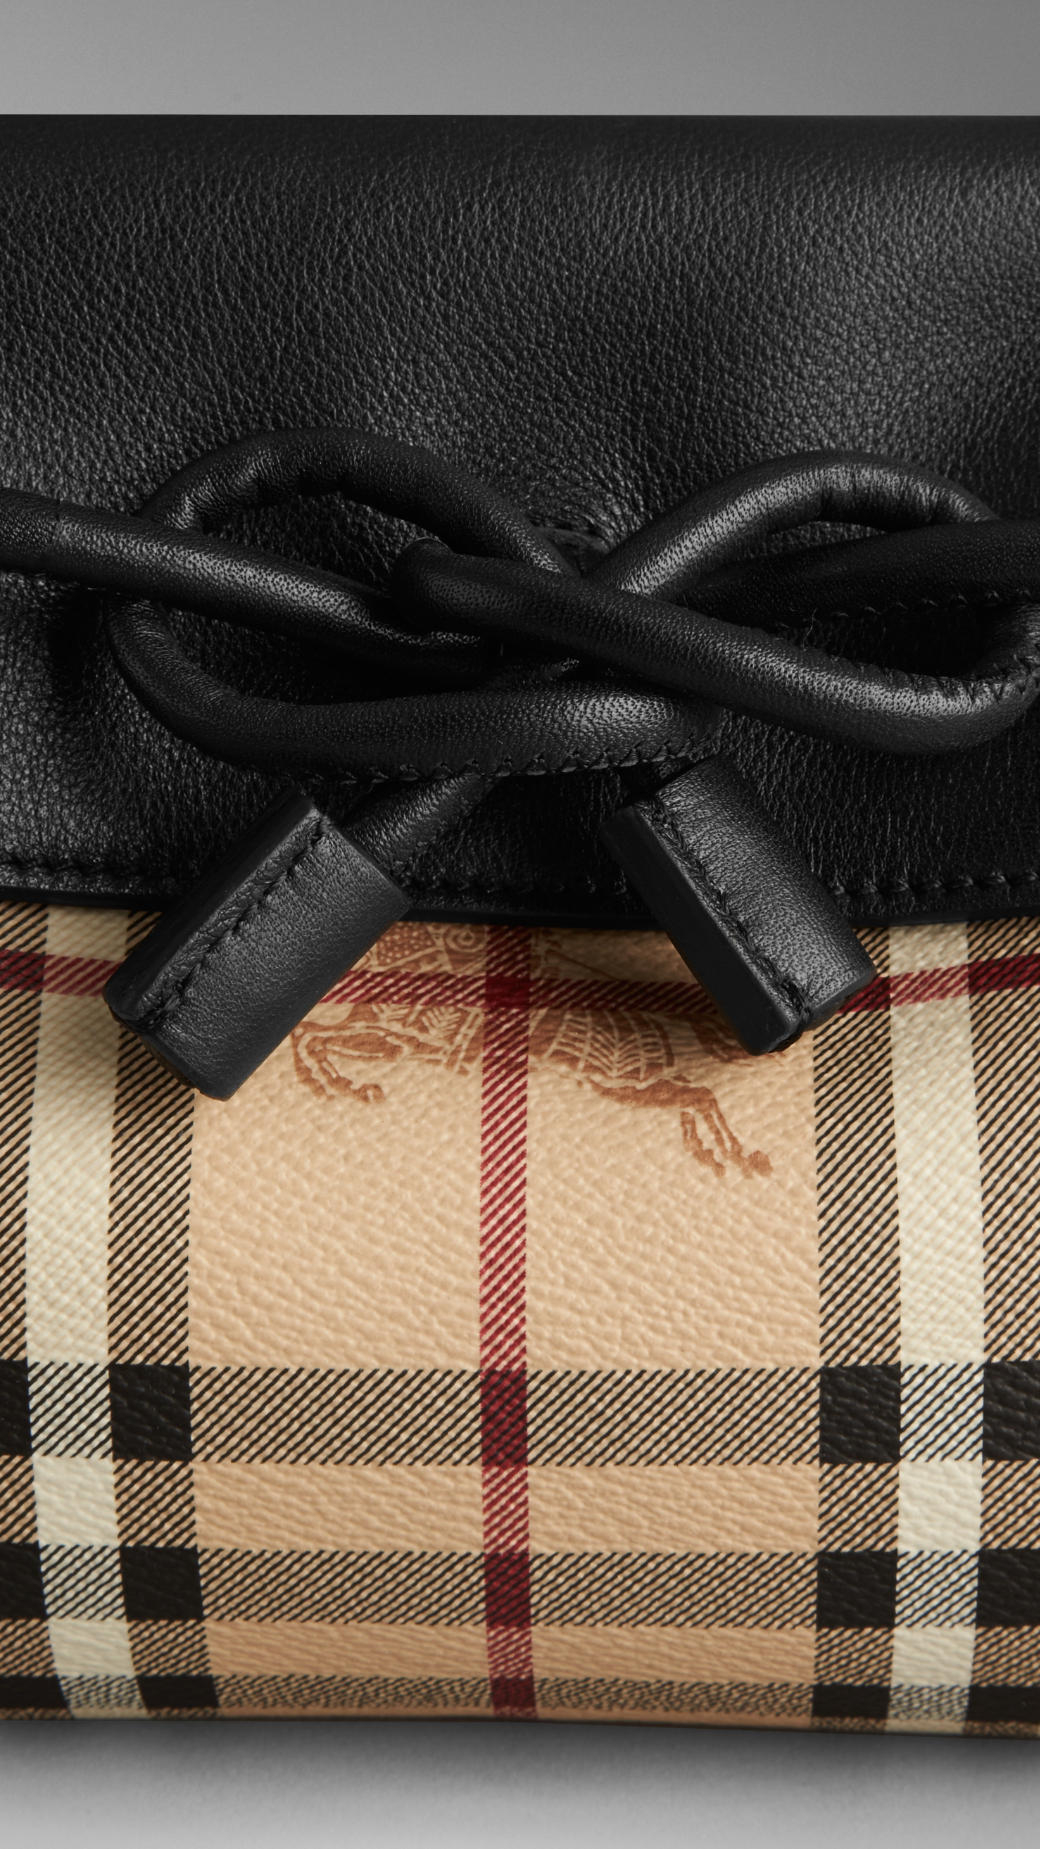 3c3f75986f43 Lyst - Burberry Small Leather And Haymarket Check Clutch Bag in Black